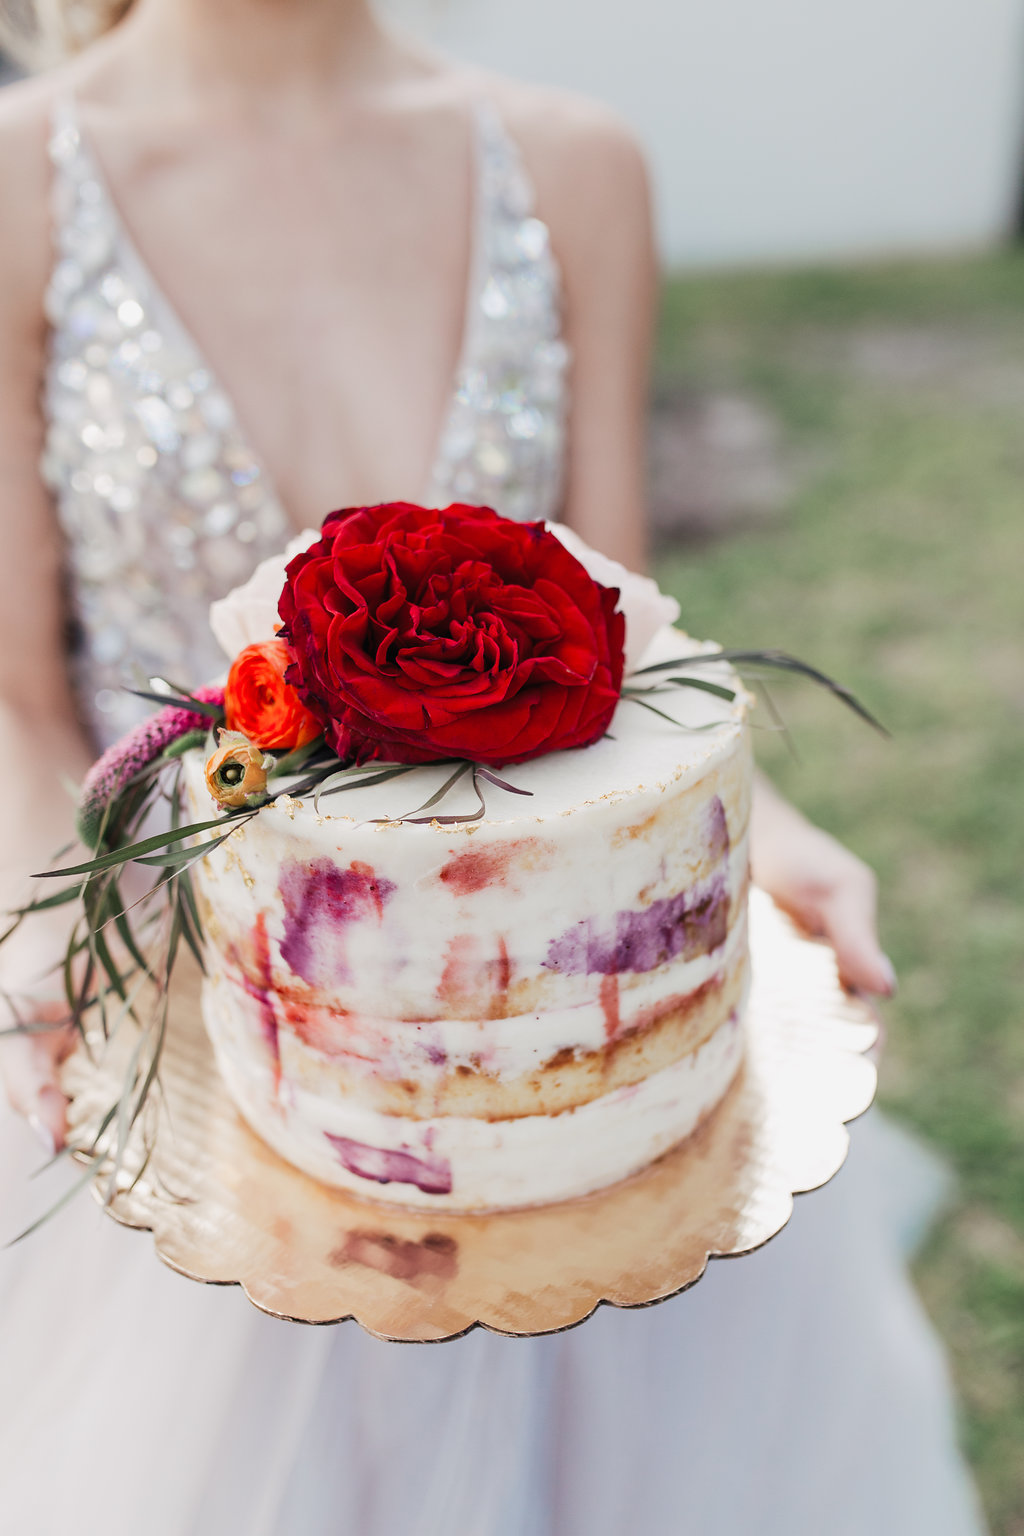 wedding cake topped with red flowers - photo by Alondra Vega Photography http://ruffledblog.com/jewel-toned-wedding-ideas-with-a-surprise-proposal